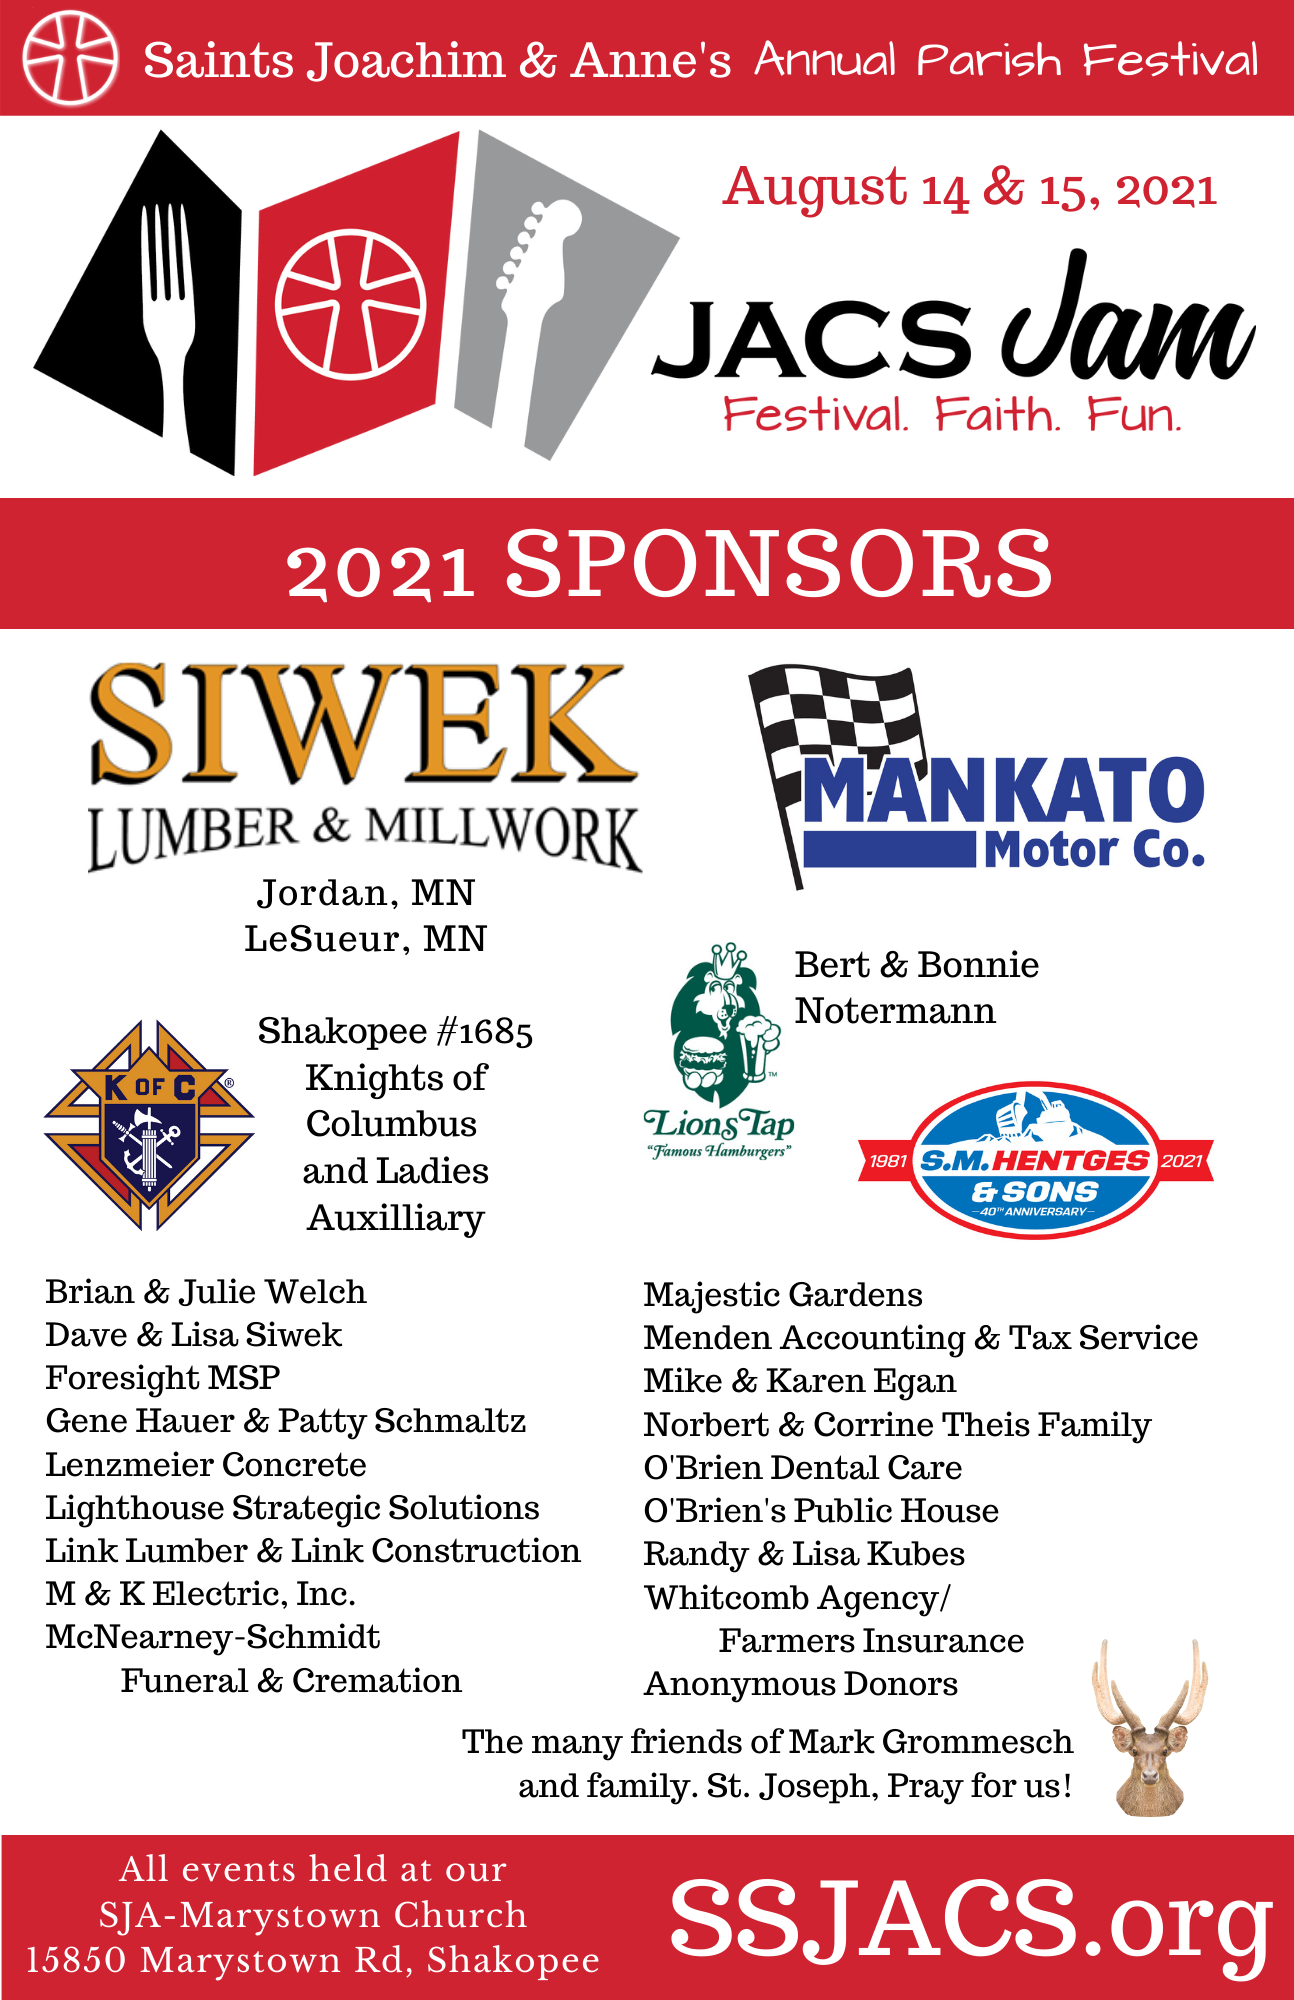 Special Thank You to our 2021 JACS JAM Sponsors